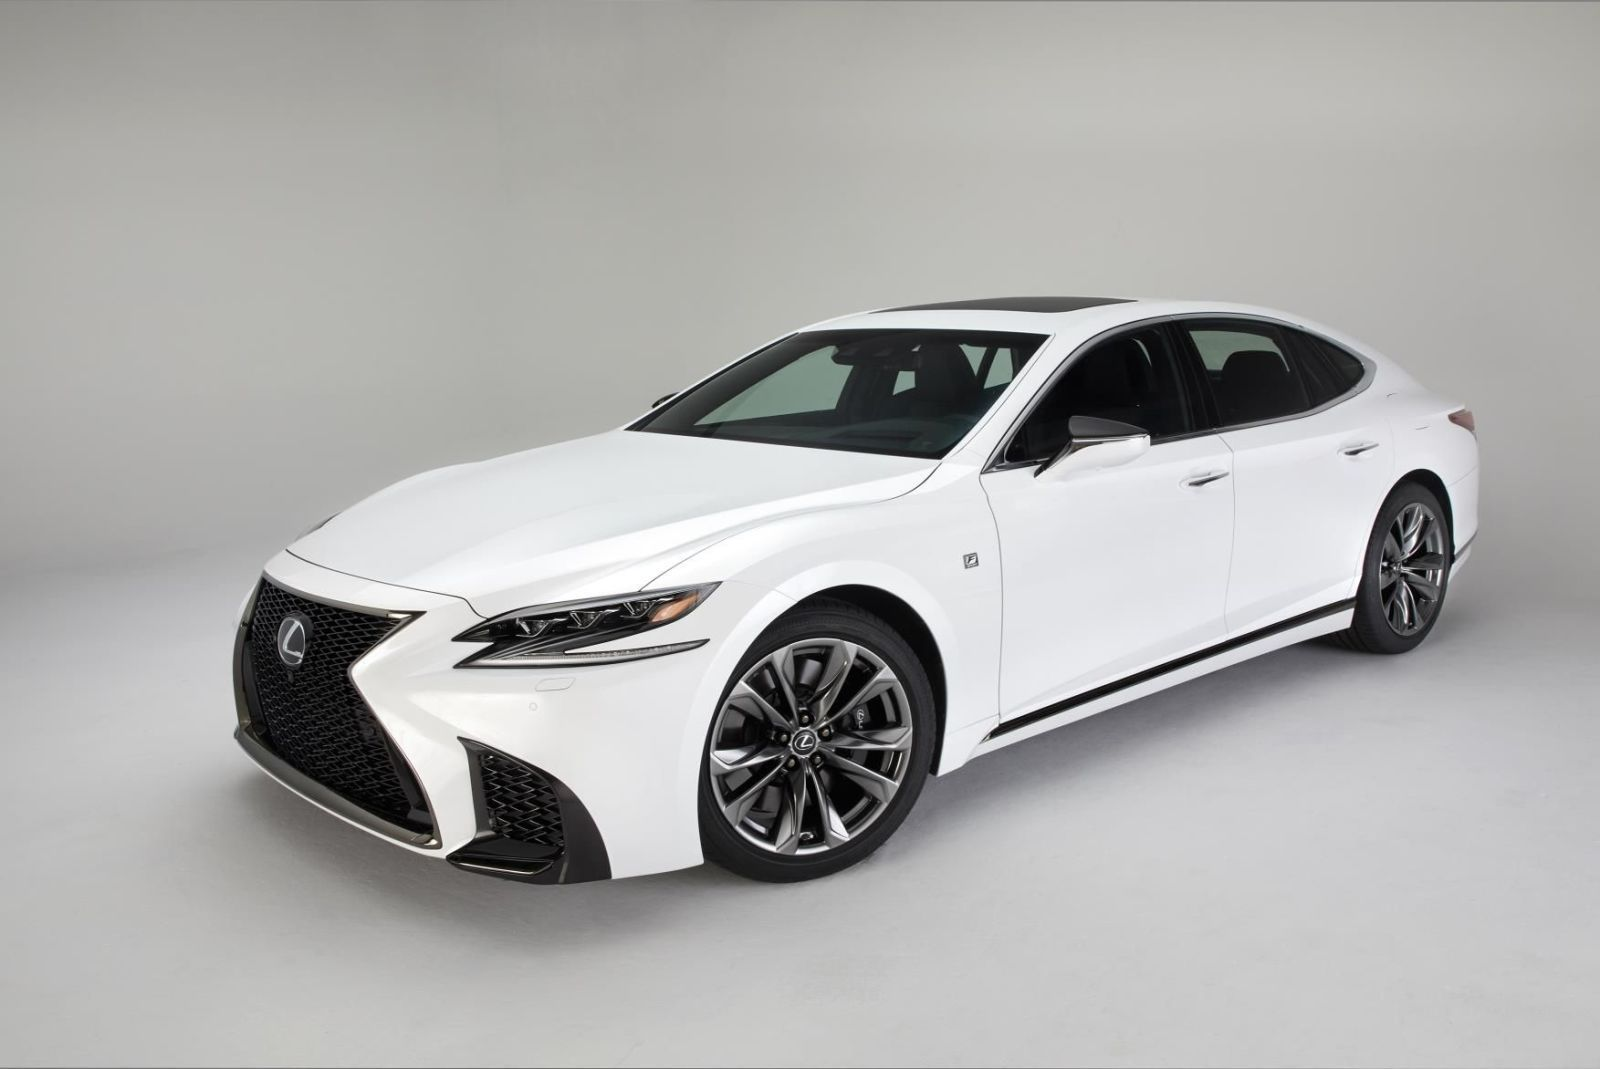 The brand new lexus ls 500 f sport will only be available with a twin turbo v6